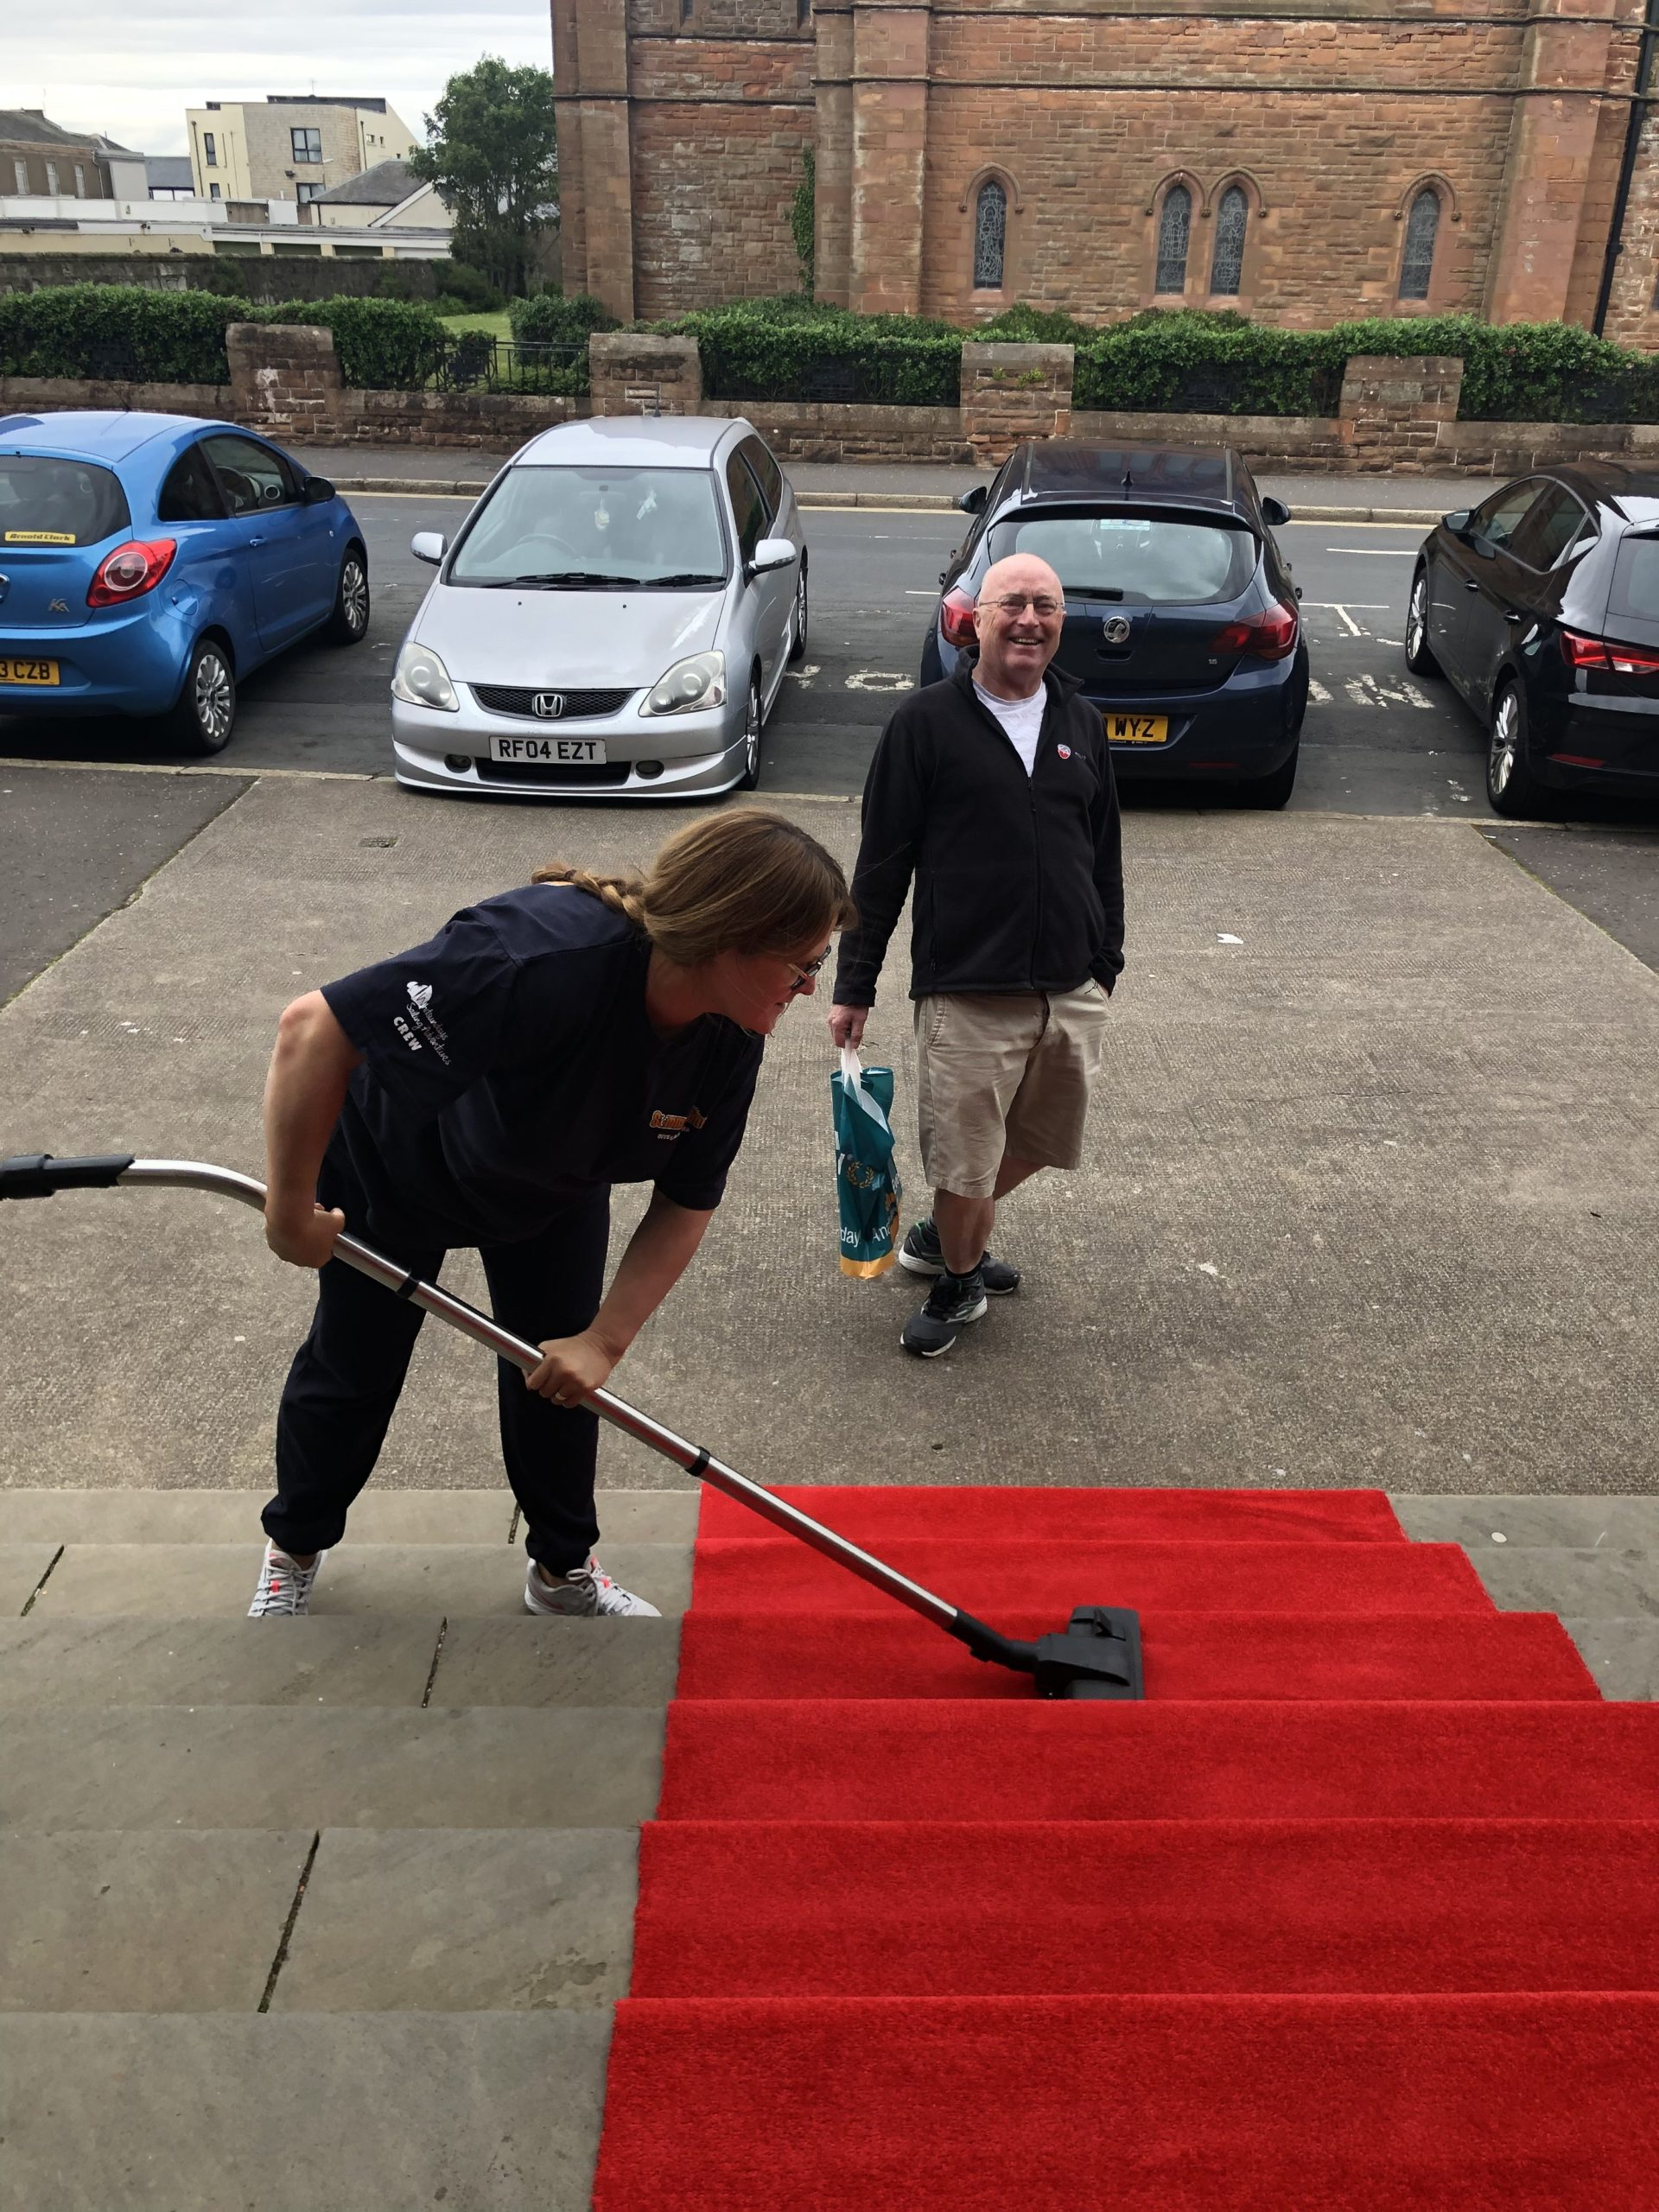 ayrshire schools kids awards red carpet hoovering